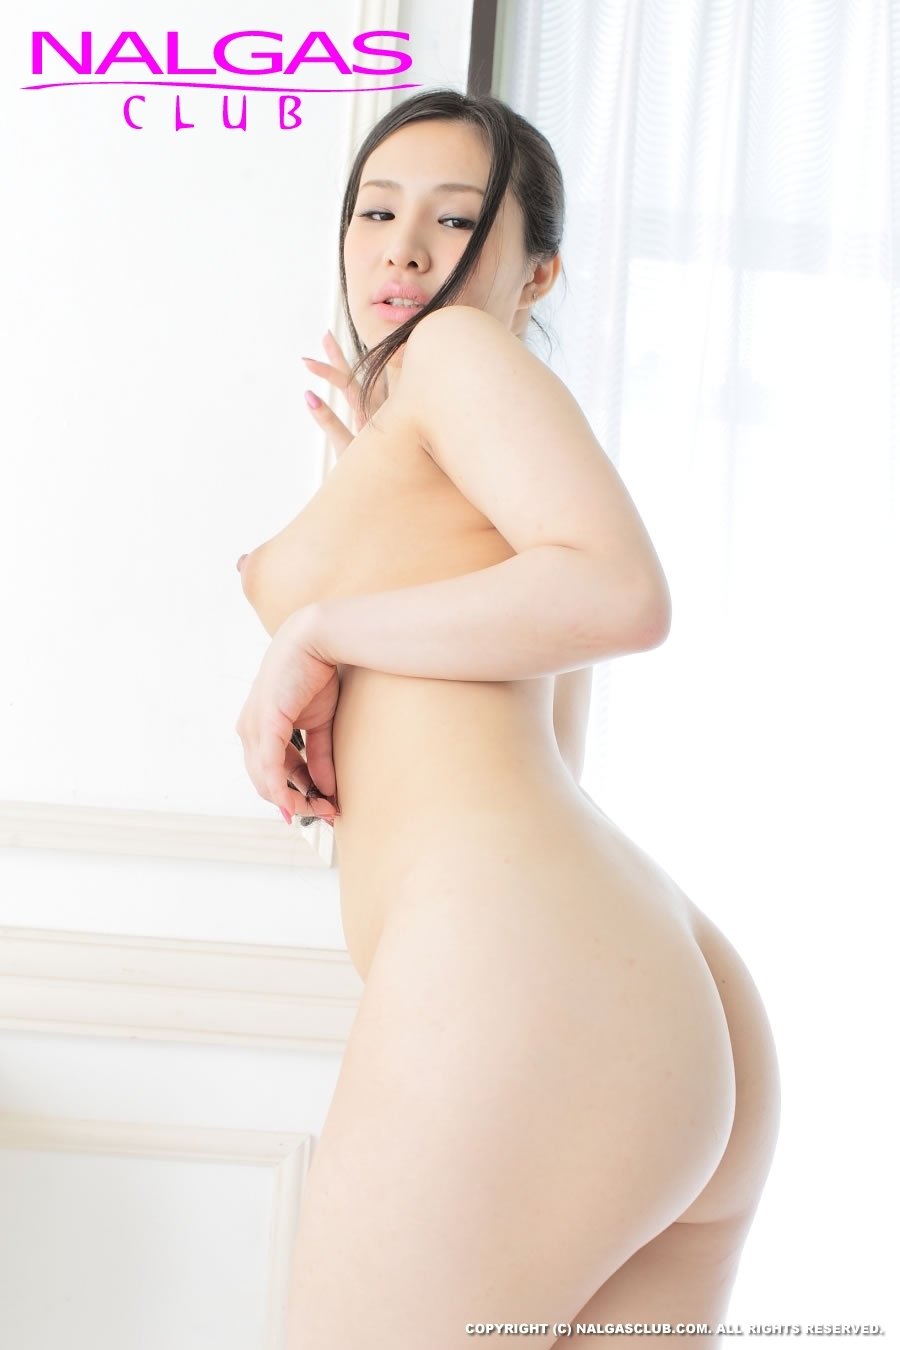 content girlsoftcore 91 106504 505565